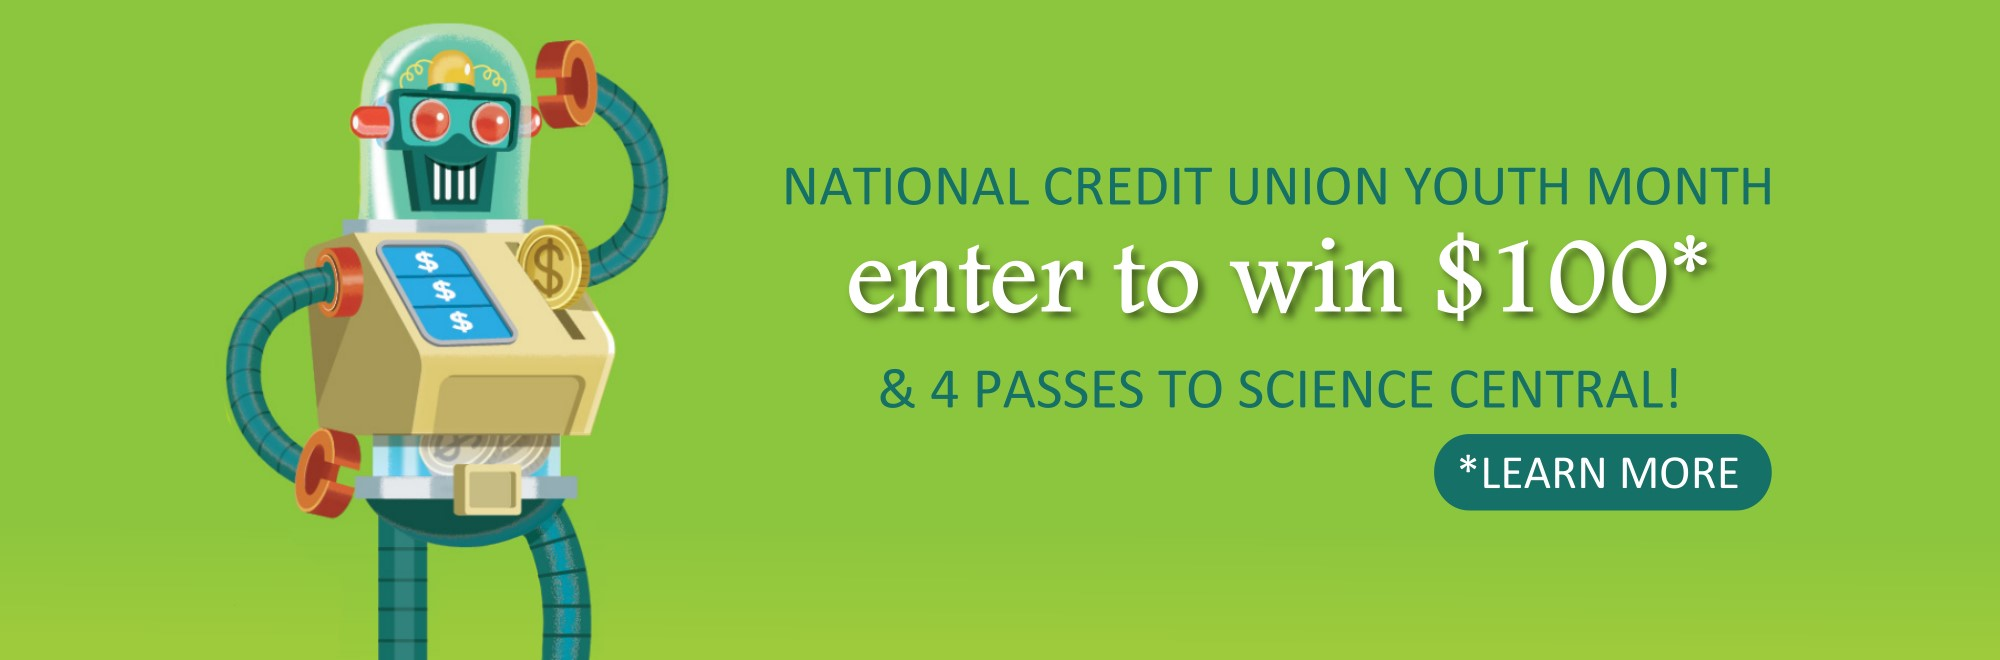 youth enter to win $100 & science central passes